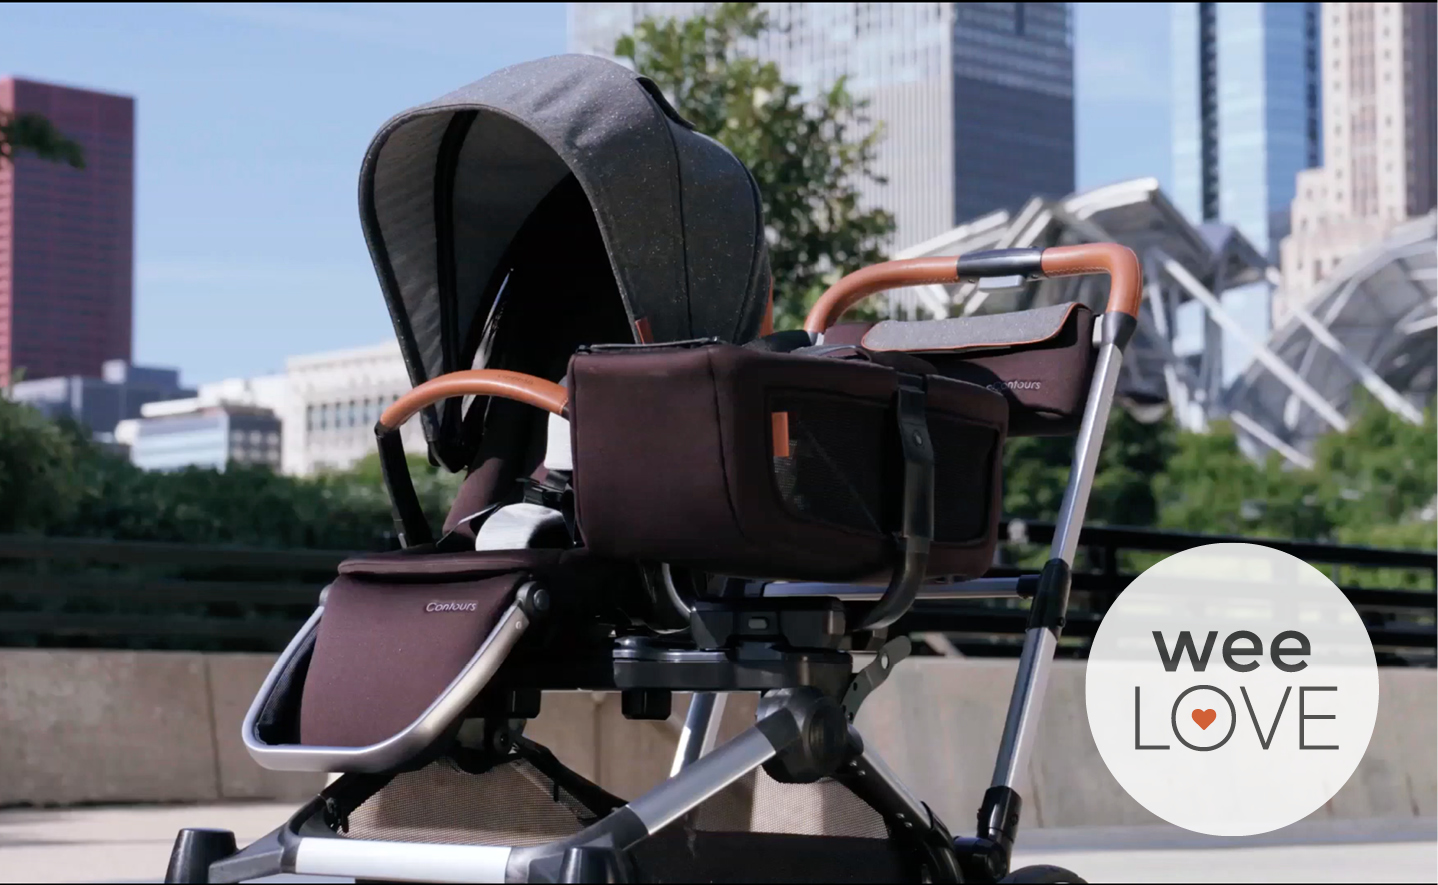 photo of the element convertible stroller from Contours outside near Millennium Park in Chicago. Shown with a forward-facing toddler seat and a tandem tote carry bag.